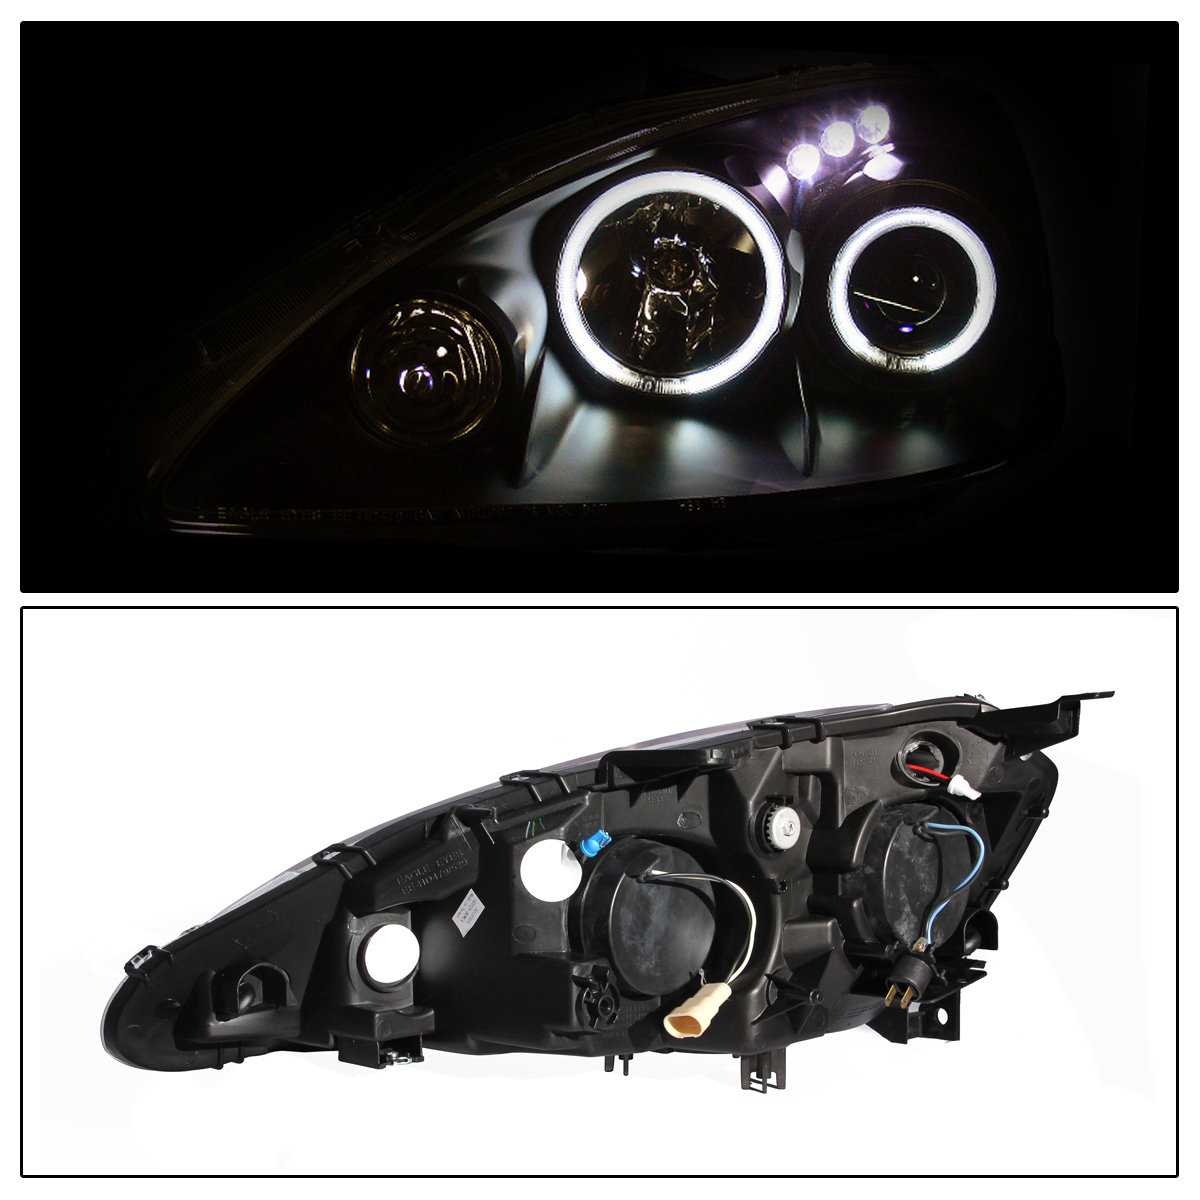 2006 Acura Tl Tail Lights For Sale: [Dual CCFL Halo] 2005 2006 Acura RSX LED Projector Black